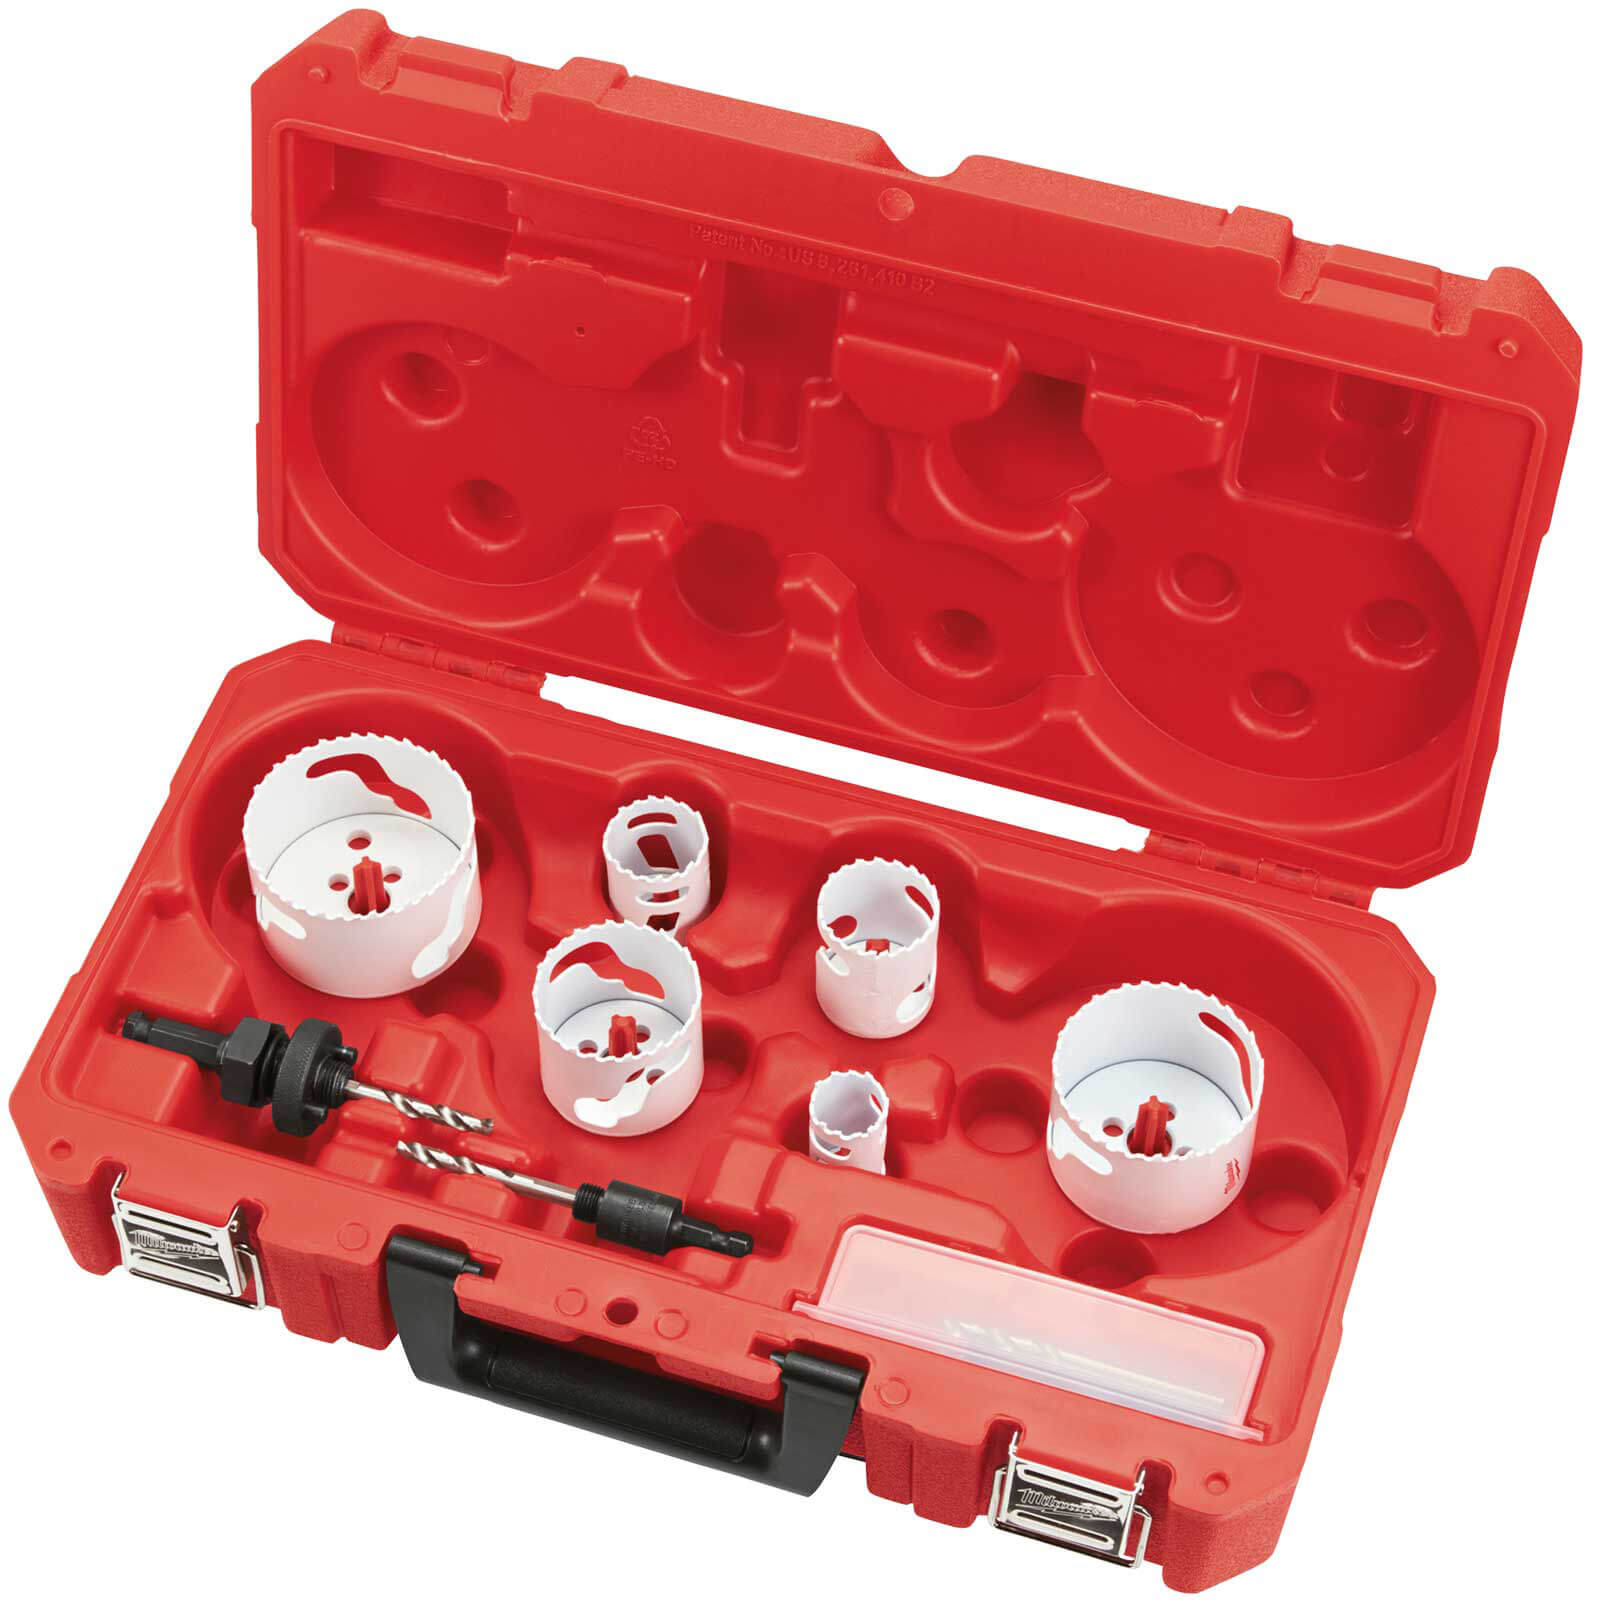 Image of Milwaukee 10 Piece Hole Dozer Bi-Metal Holesaw Set